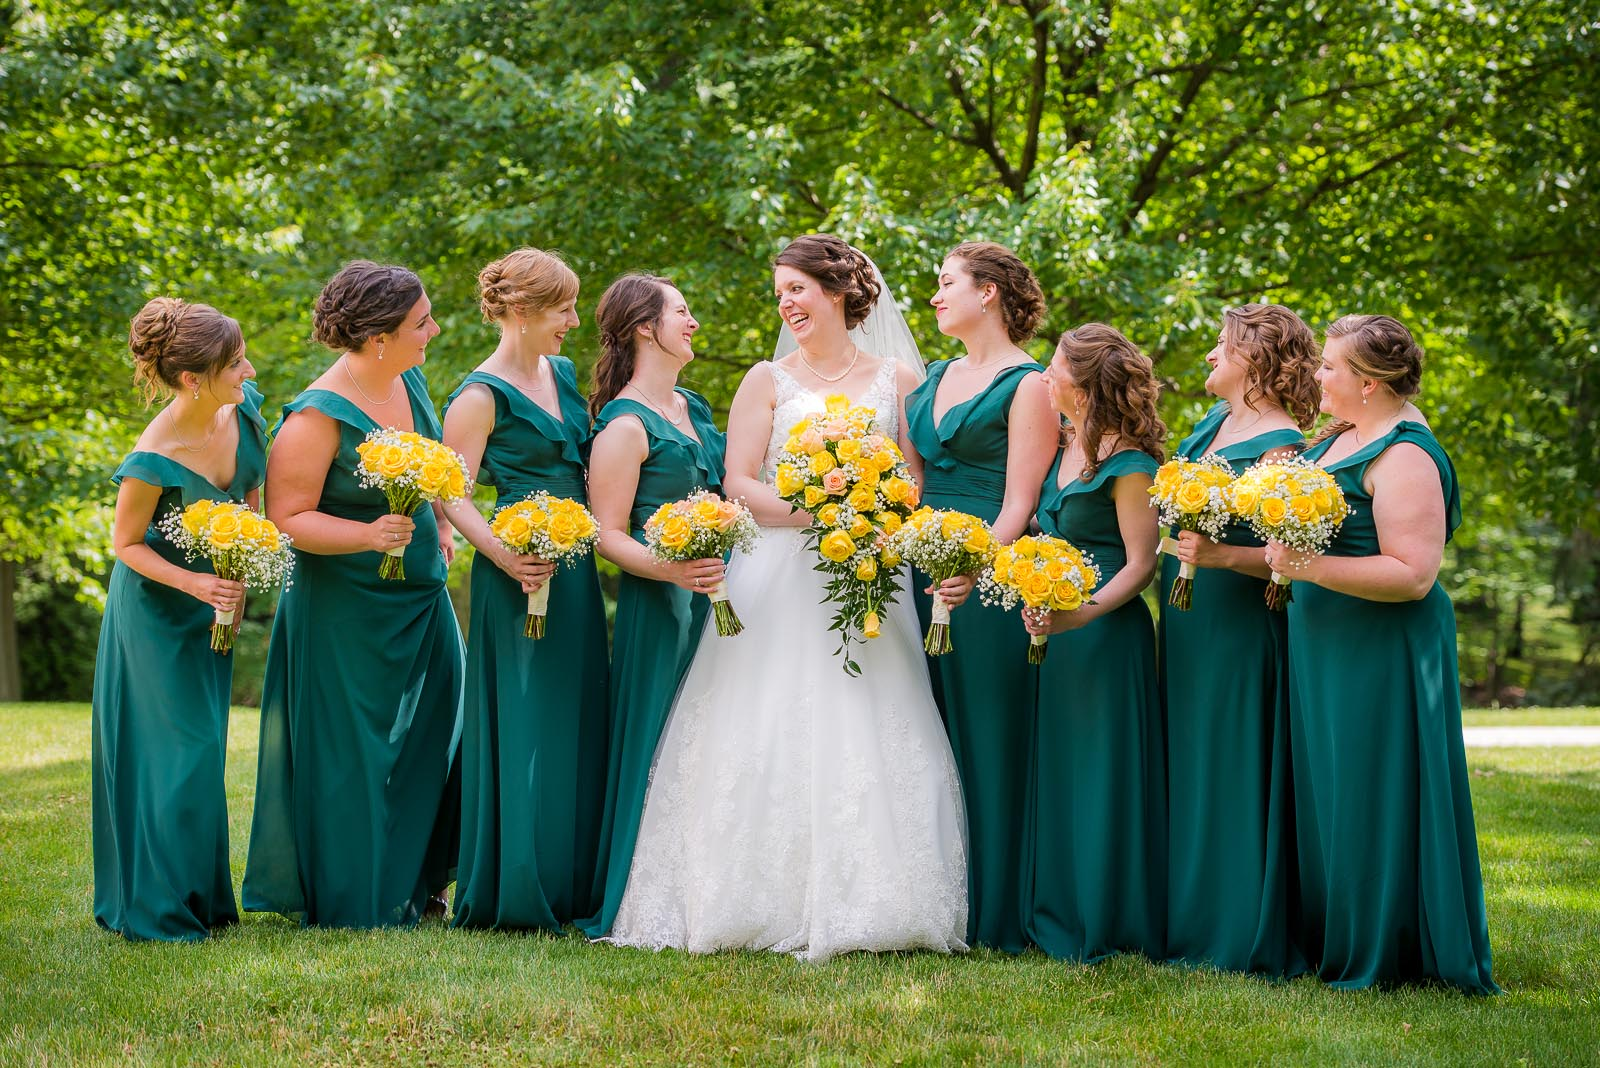 Eric_and_Christy_Photography_Blog_Wedding_Kelly_Michael-22